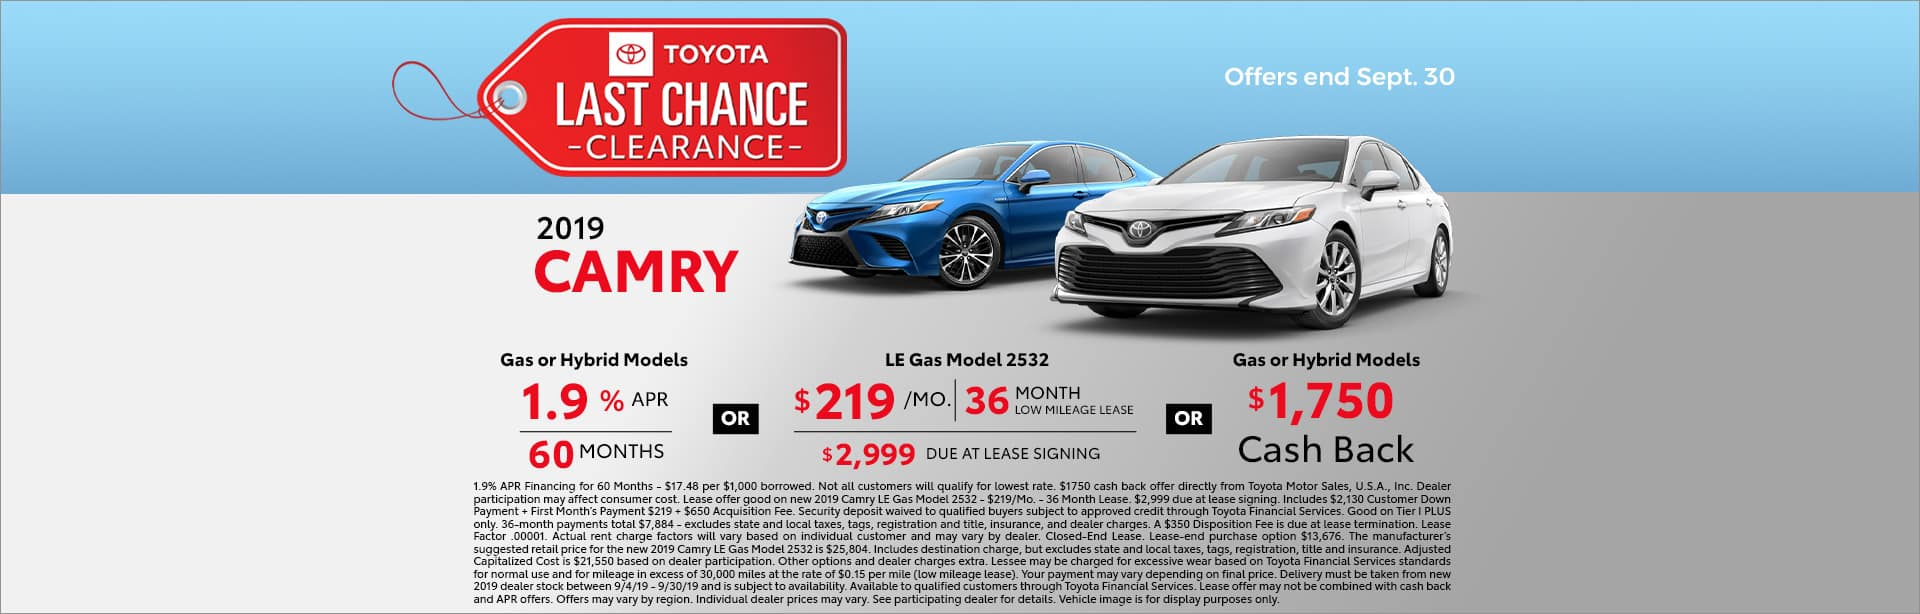 last chance clearance camry